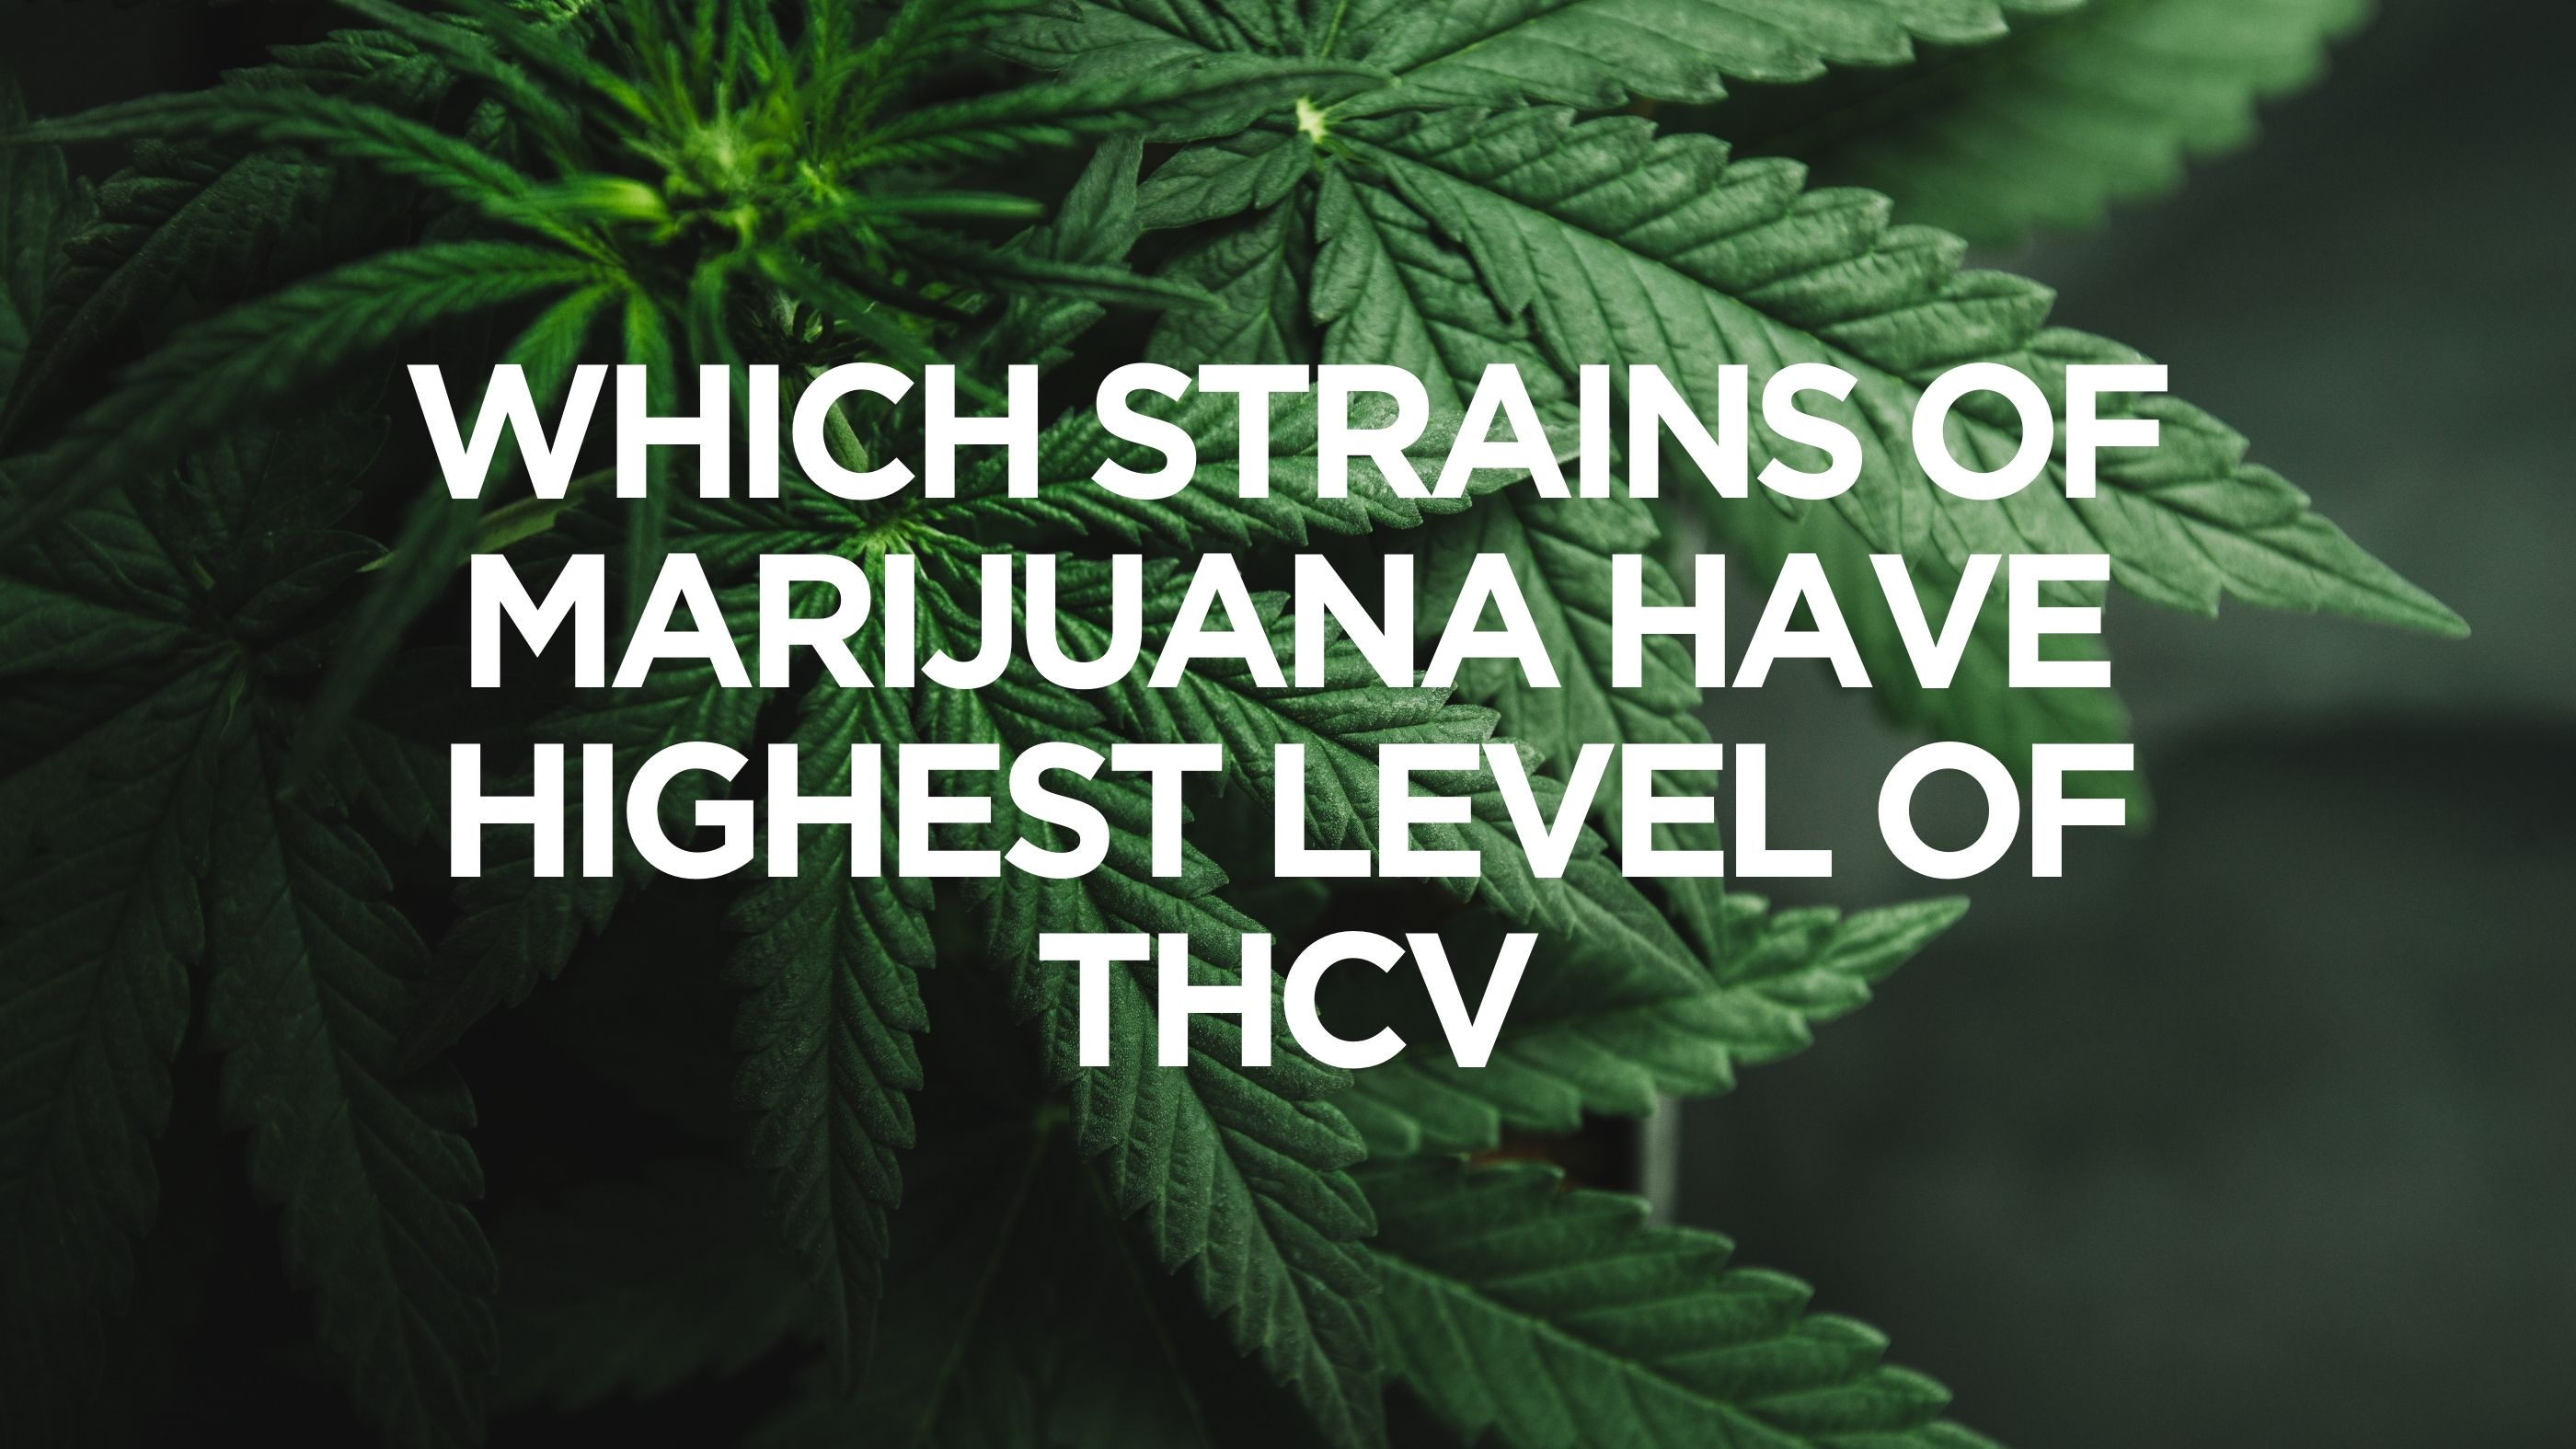 Which Strains of Marijuana Have Highest Level of THCV?